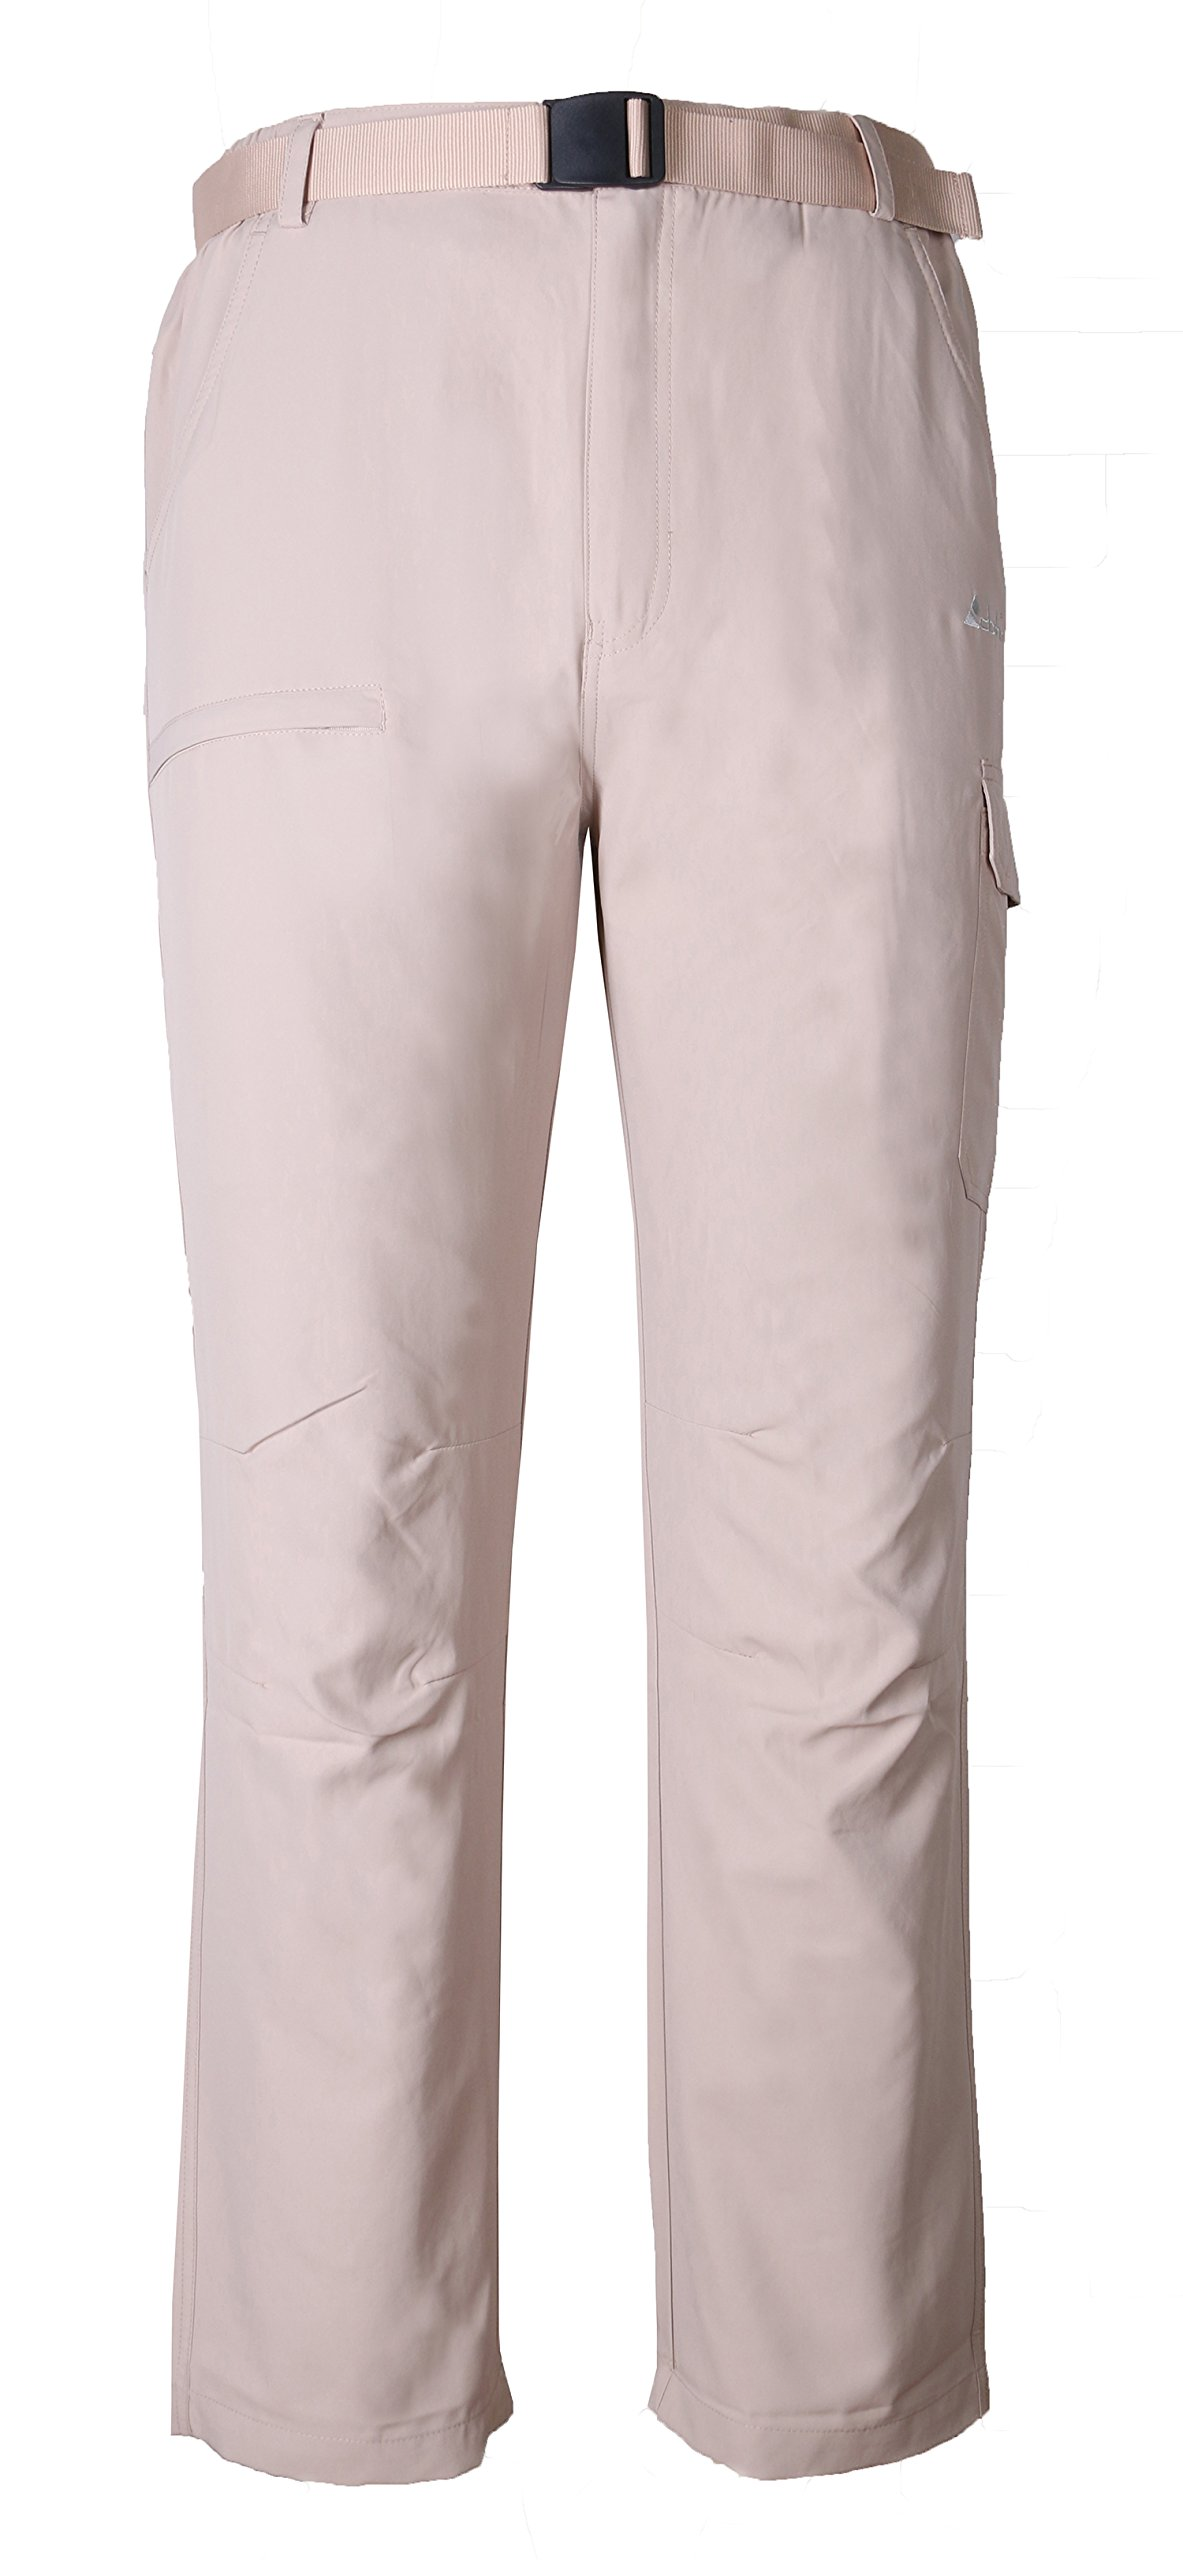 Clothin Mens Belted Side Elastic Cargo Pants - Lightweight, Quick-Dry, Water-Resistant, Khaki, M (33-35W29.5L/Regular)